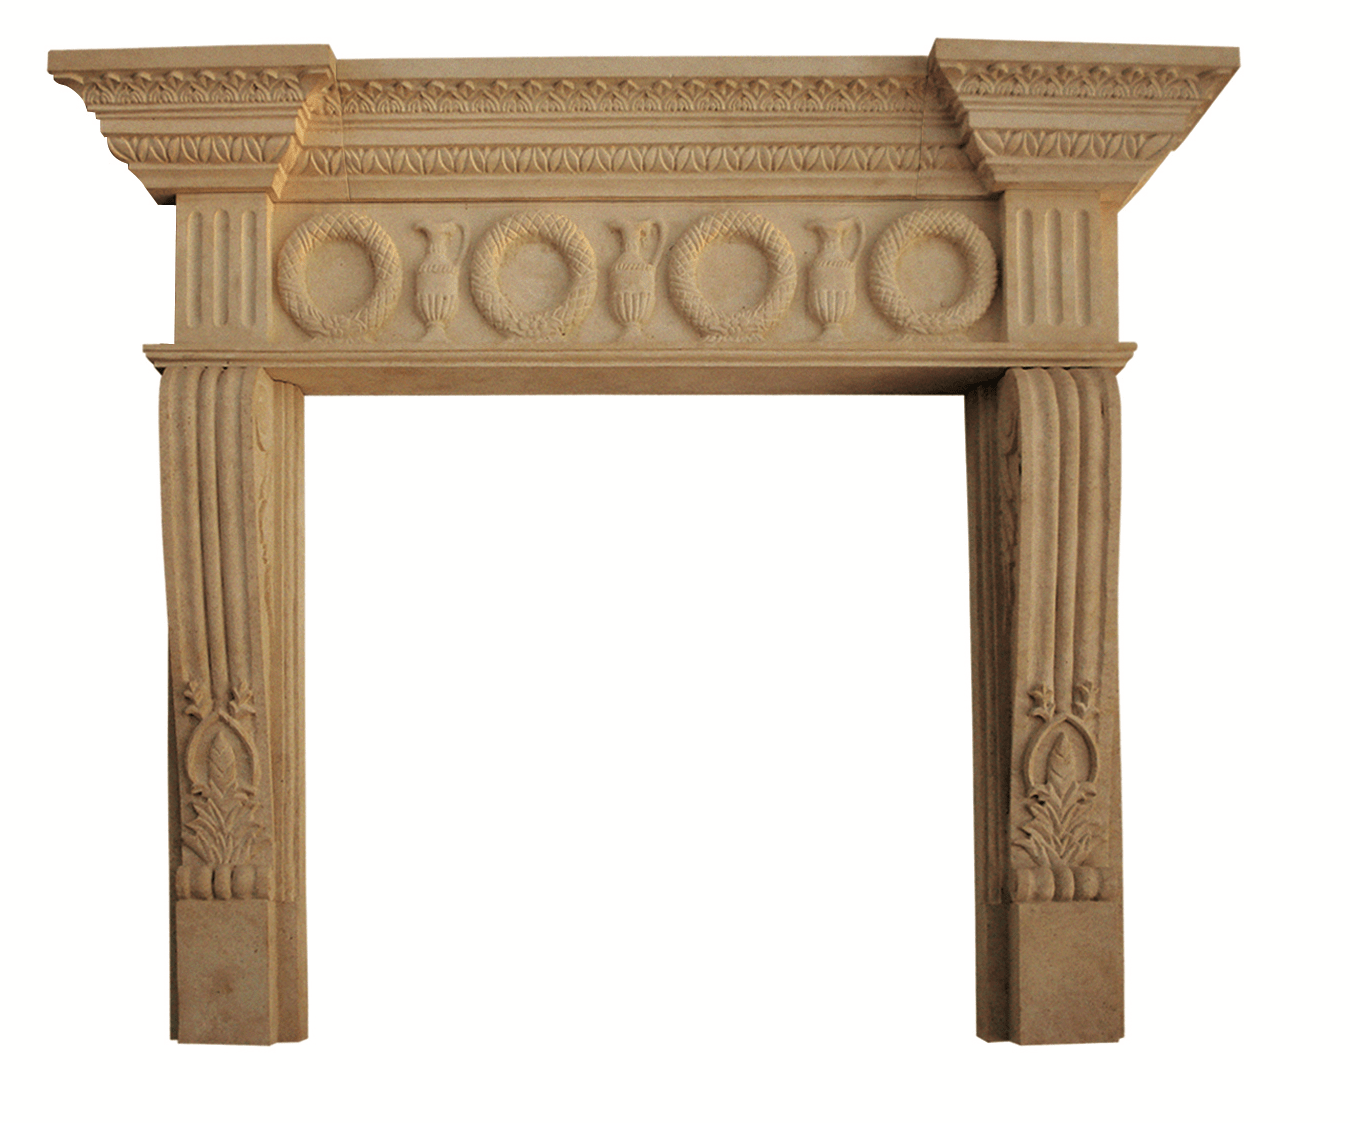 Olympian Fire Surround